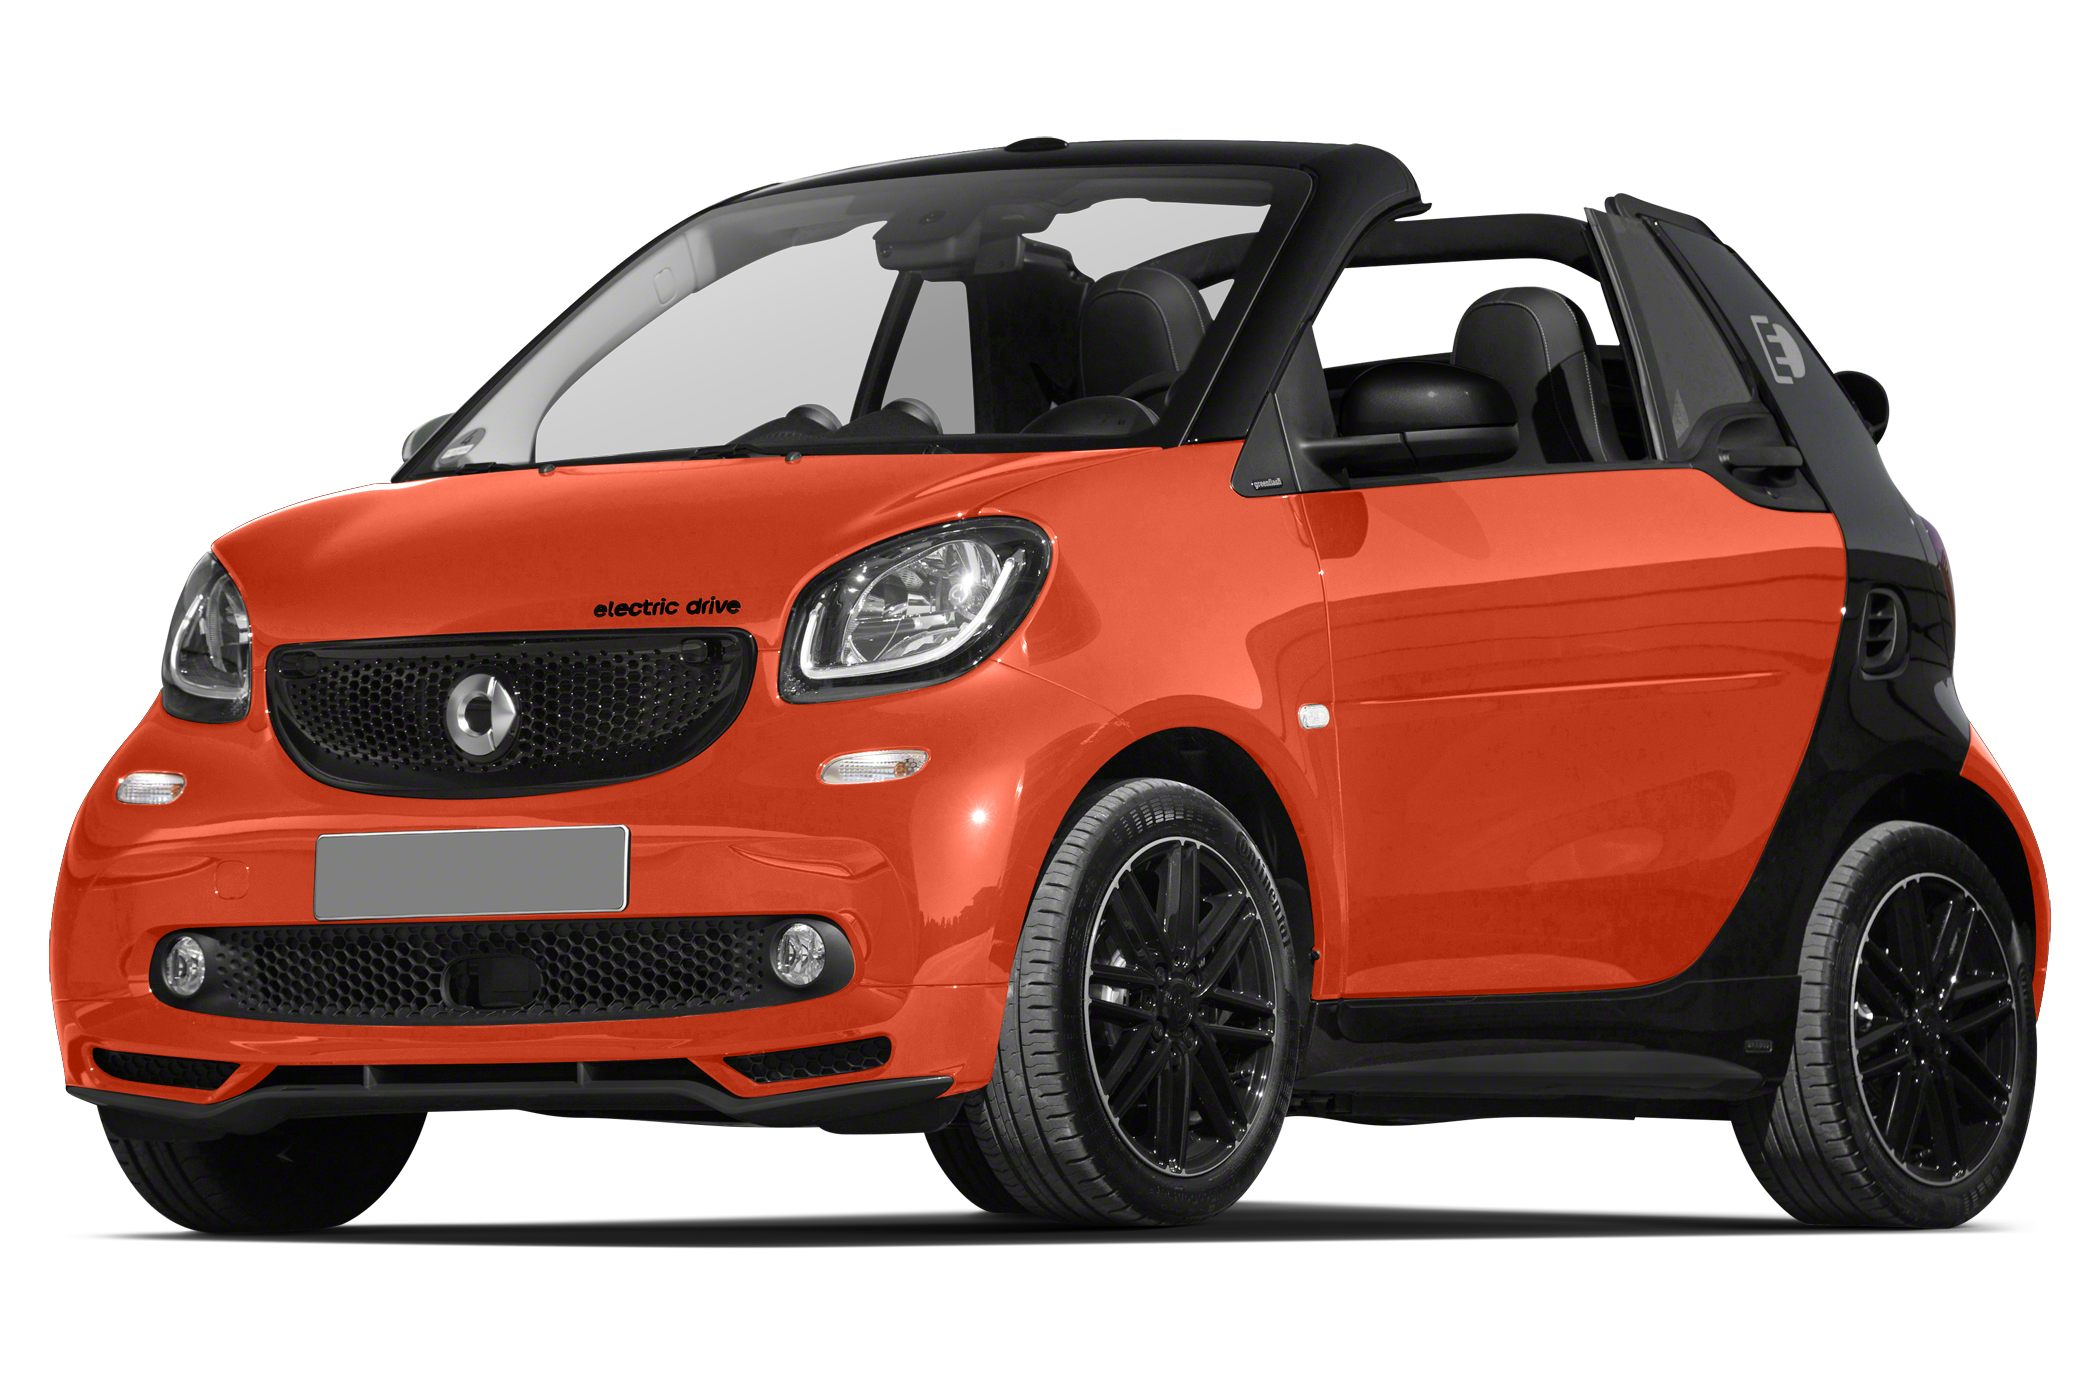 2018 Smart Fortwo Electric Drive Prime 2dr Cabriolet Specs And Prices